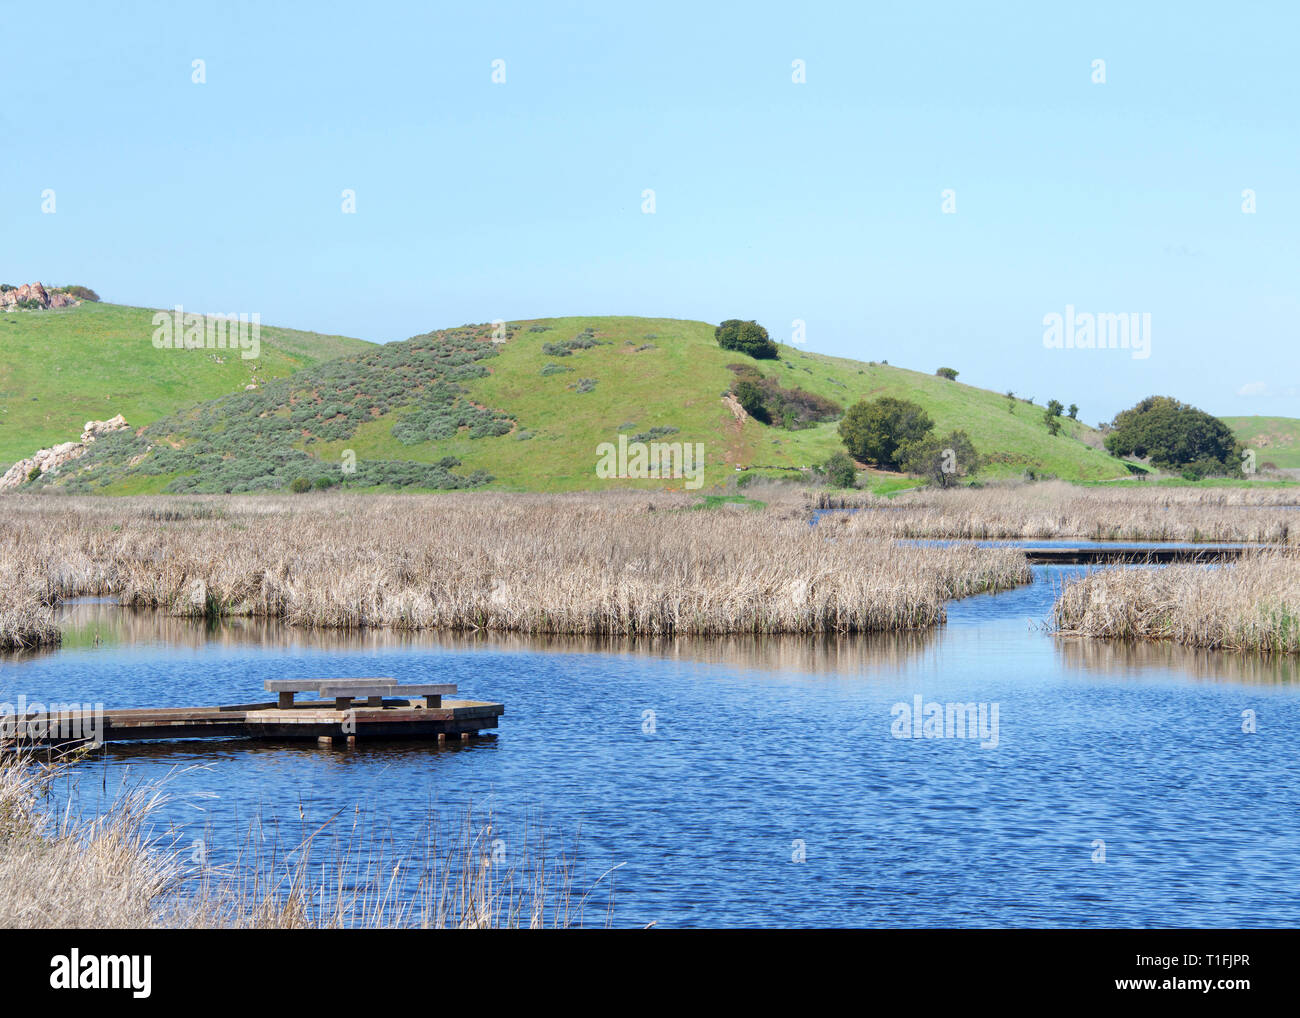 Rains relieve Drought conditions in California. Previously dried up lake bed with pier jetty out in Coyote Hills, Northern California with green hills - Stock Image